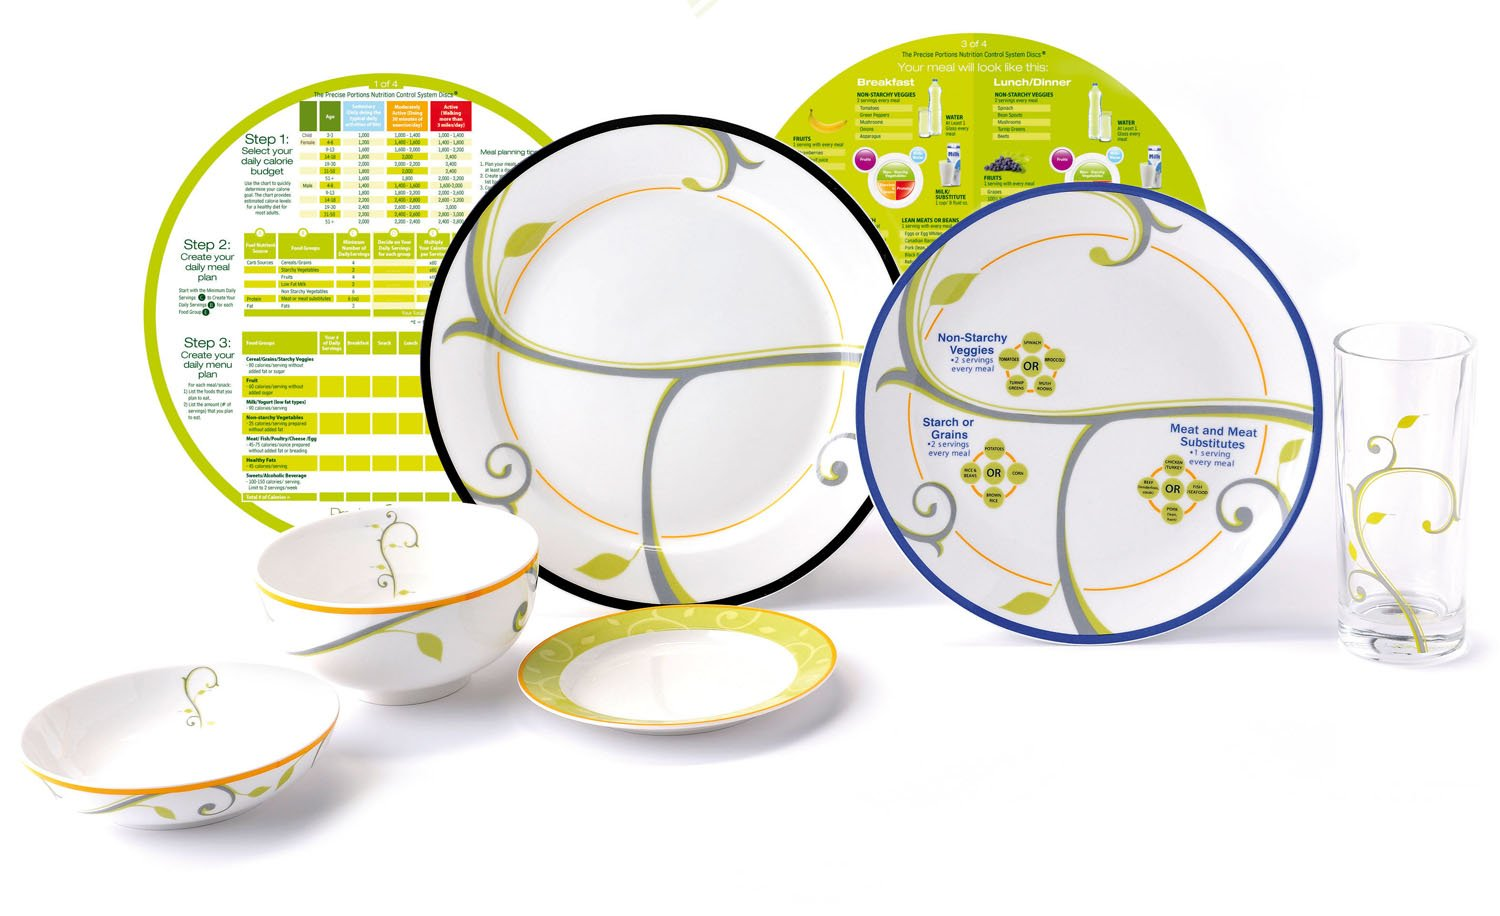 Amazon.com Precise Portions Portion Control Weight Loss Plates Bowls and Glass Dinner Set Industrial \u0026 Scientific  sc 1 st  Amazon.com & Amazon.com: Precise Portions Portion Control Weight Loss Plates ...